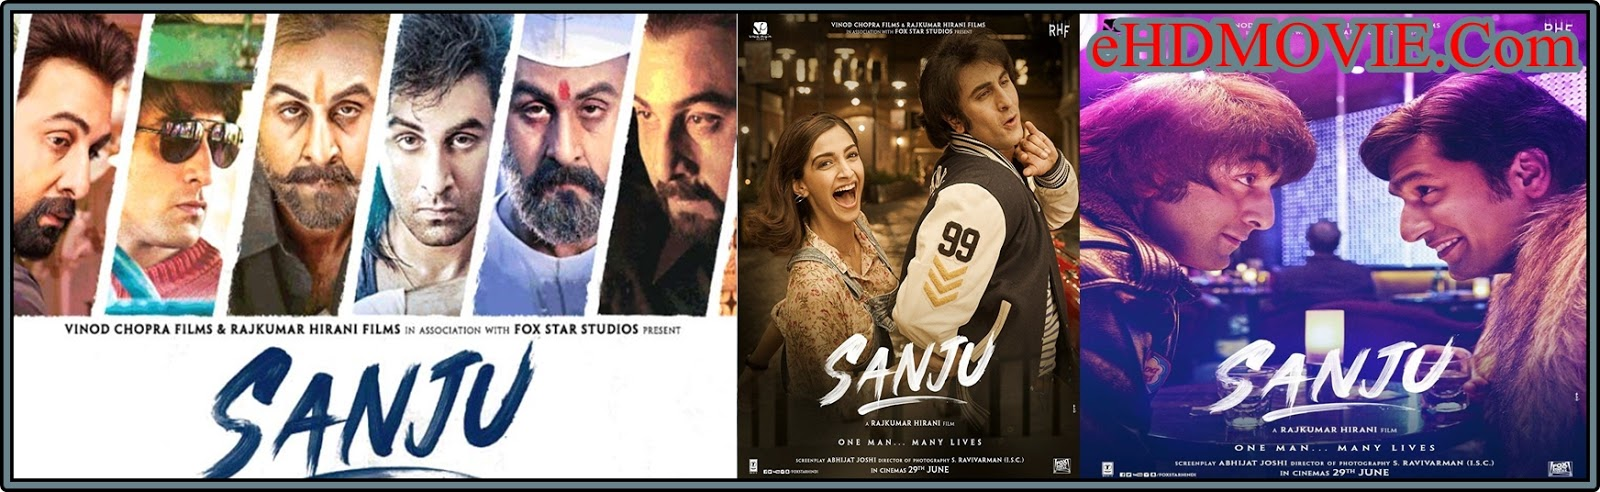 Sanju 2018 Full Movie Hindi 1080p – 720p – HEVC – 480p ORG WEB-DL 200MB – 450MB – 700MB – 1.4GB – 2.4GB ESubs Free Download